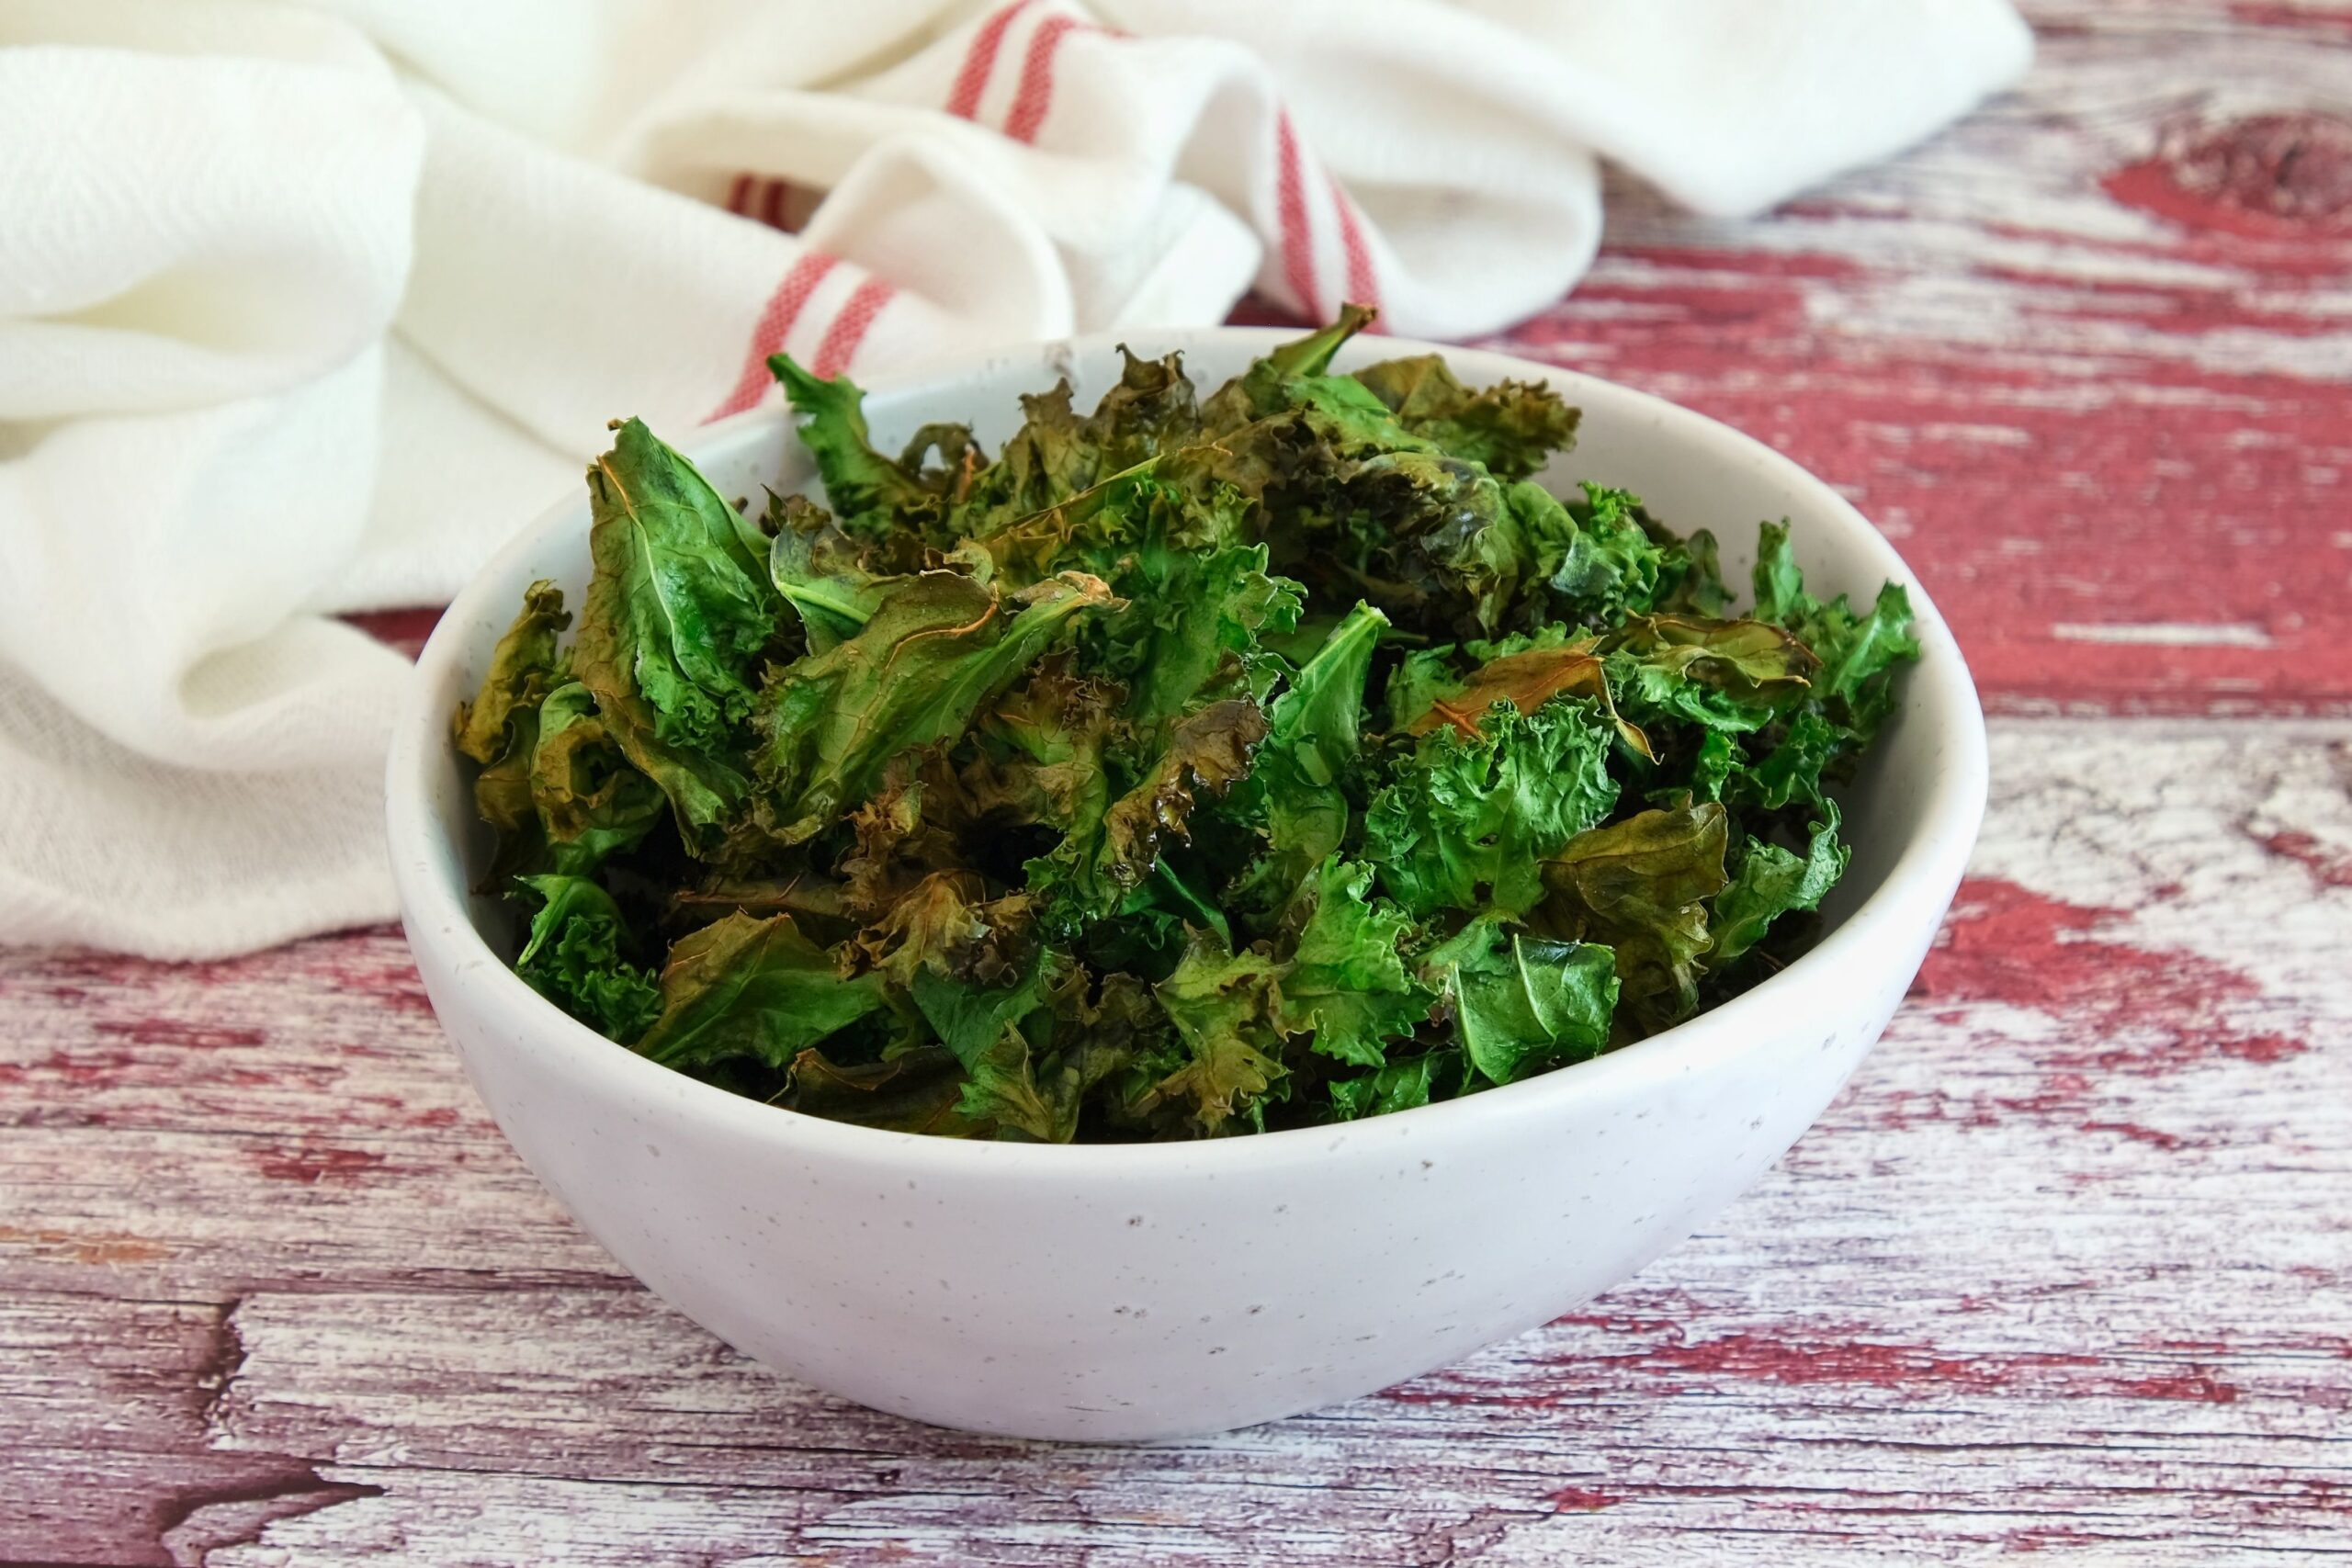 Baked Kale Chips (Paleo, Low Carb, Keto)